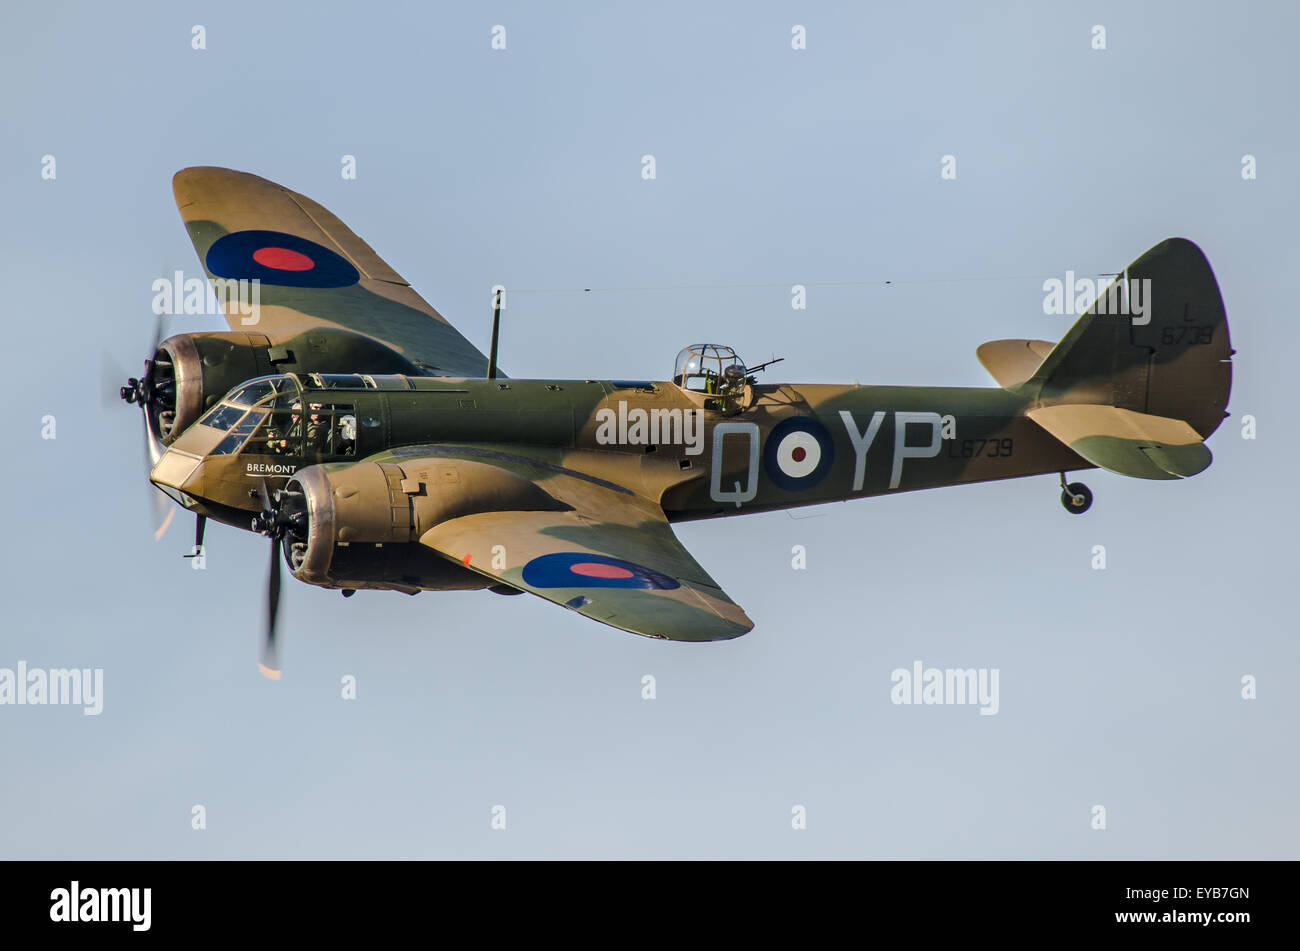 bristol-blenheim-at-an-airshow-space-for-copy-EYB7GN.jpg